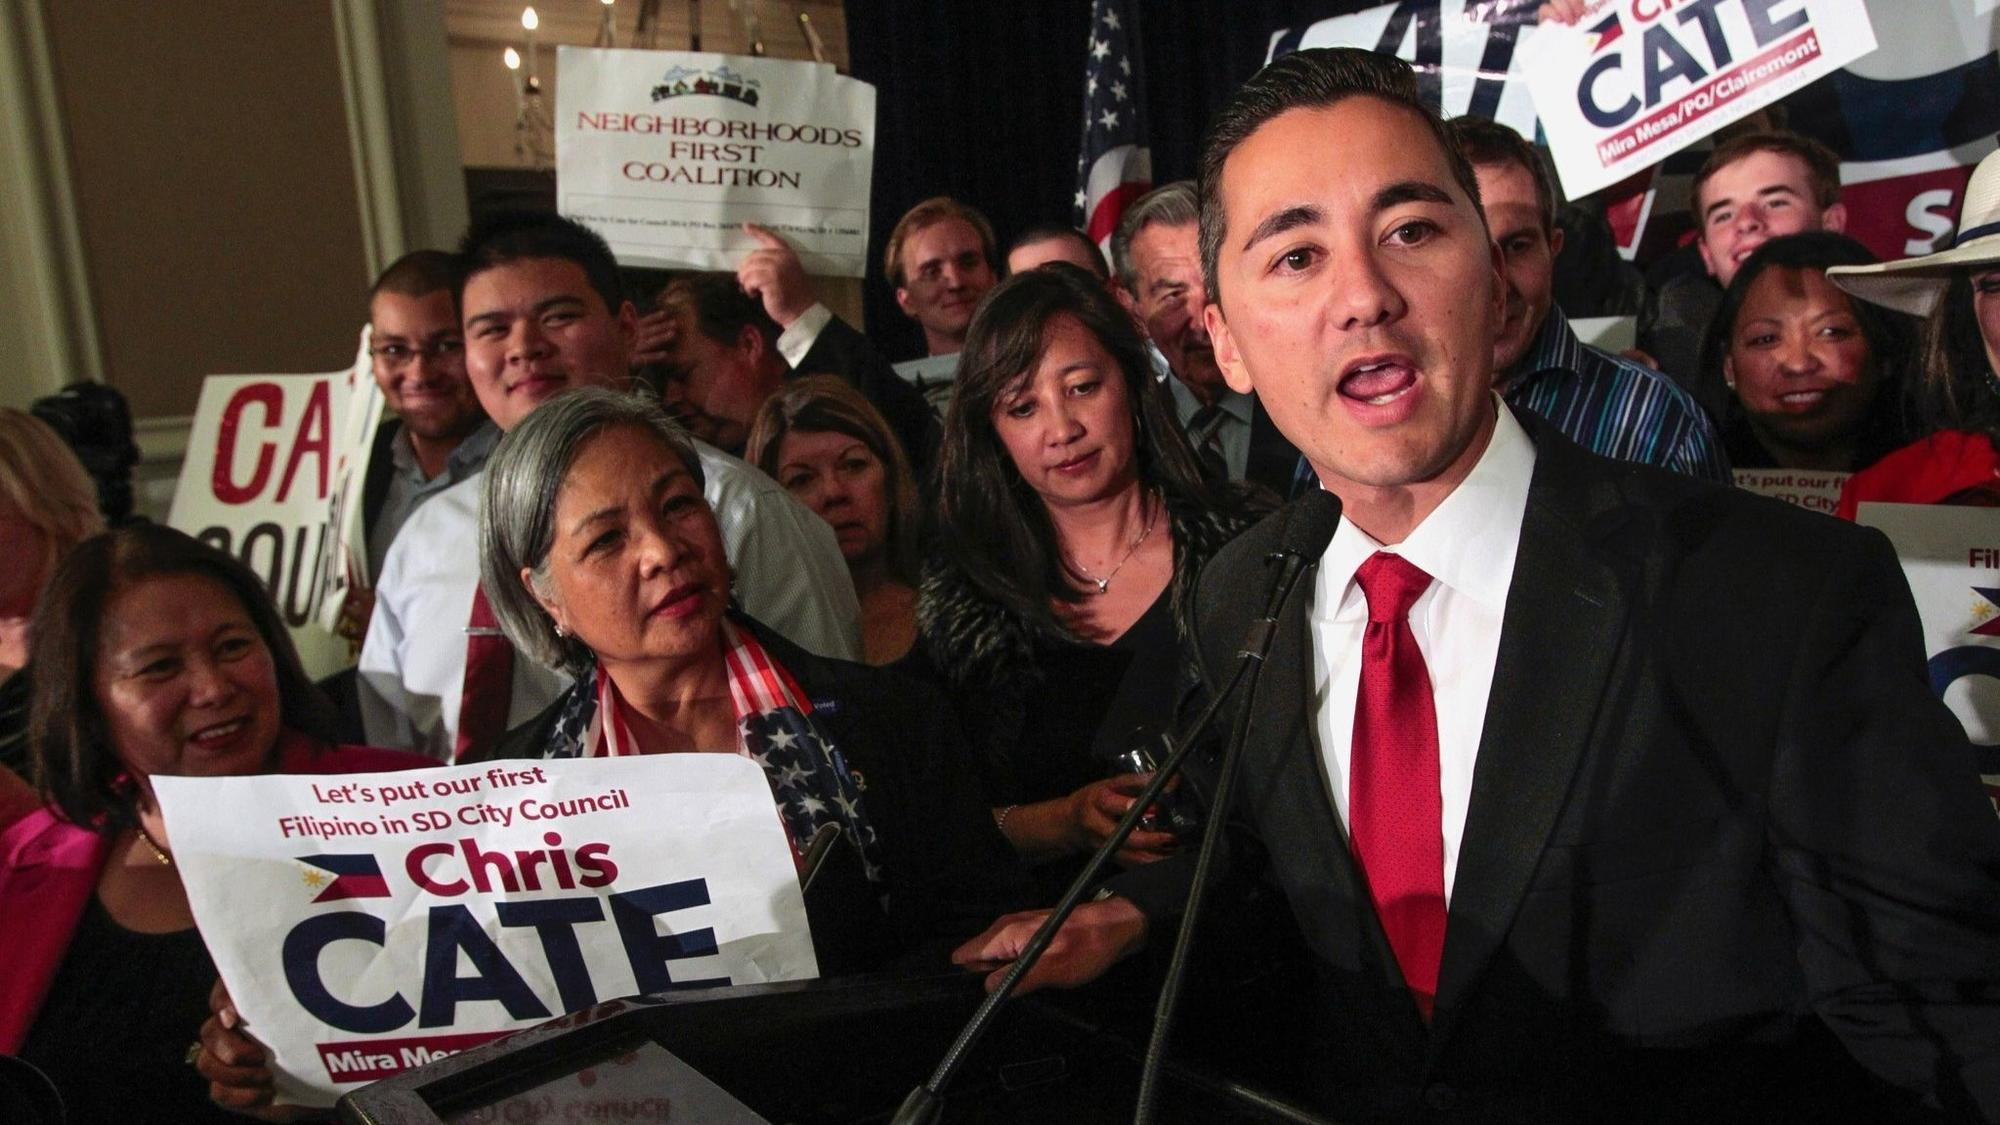 San Diego City Council candidate Chris Cate speaks to his supporters at the U.S. Grant Hotel.